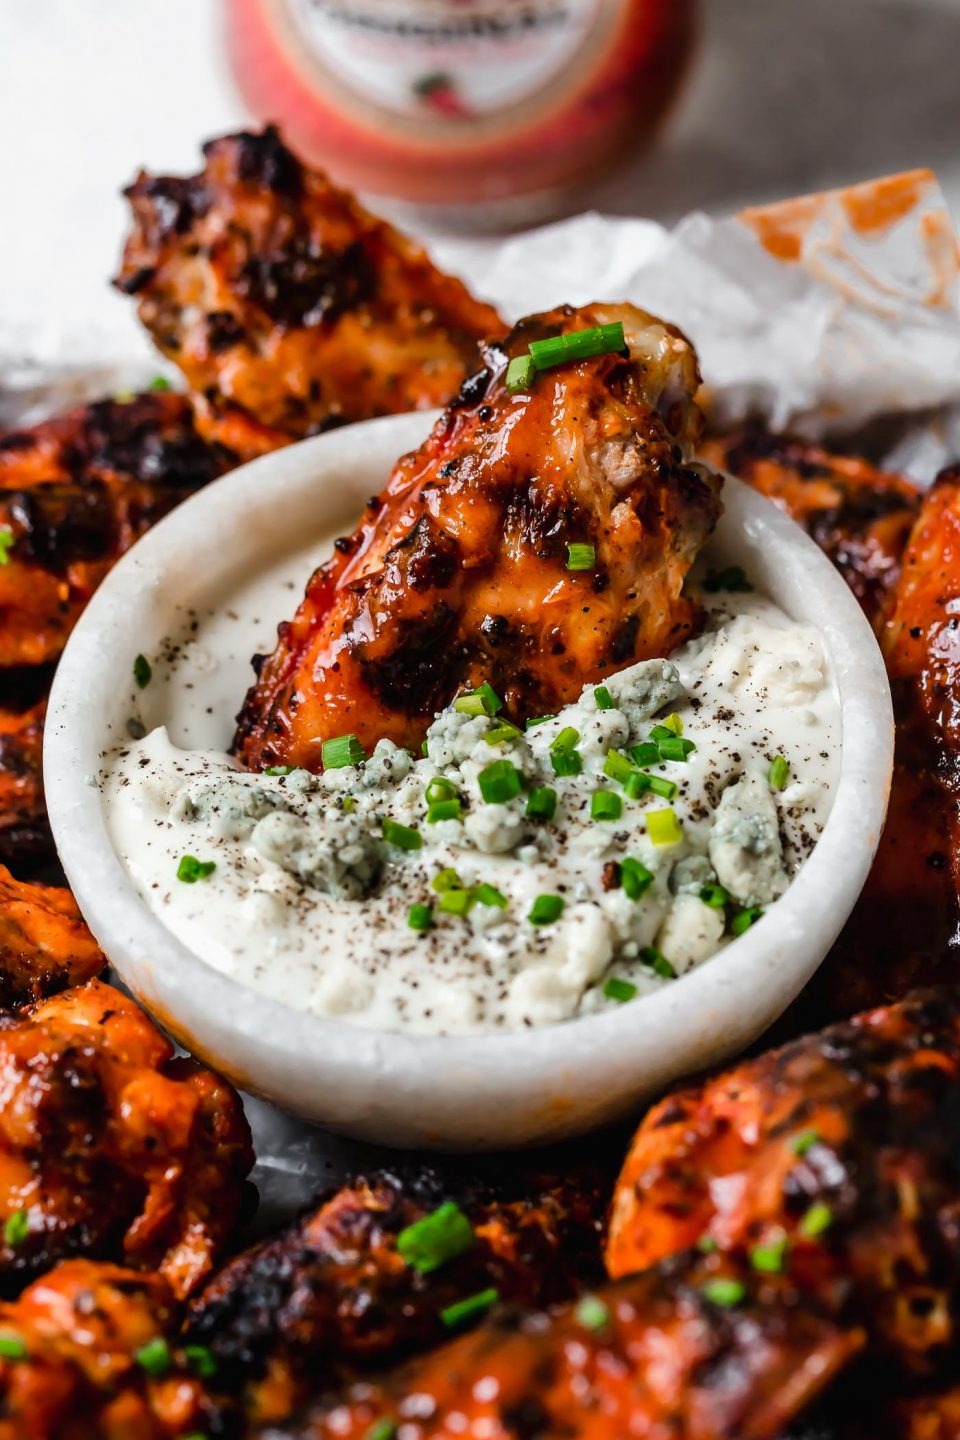 best grilled chicken wings recipe (3 ingredients) | my grilled buffalo chicken wings recipe (grilled hot wings!) stay juicy from a secret step & ingredient! plus my exact steps for how to grill chicken wings.